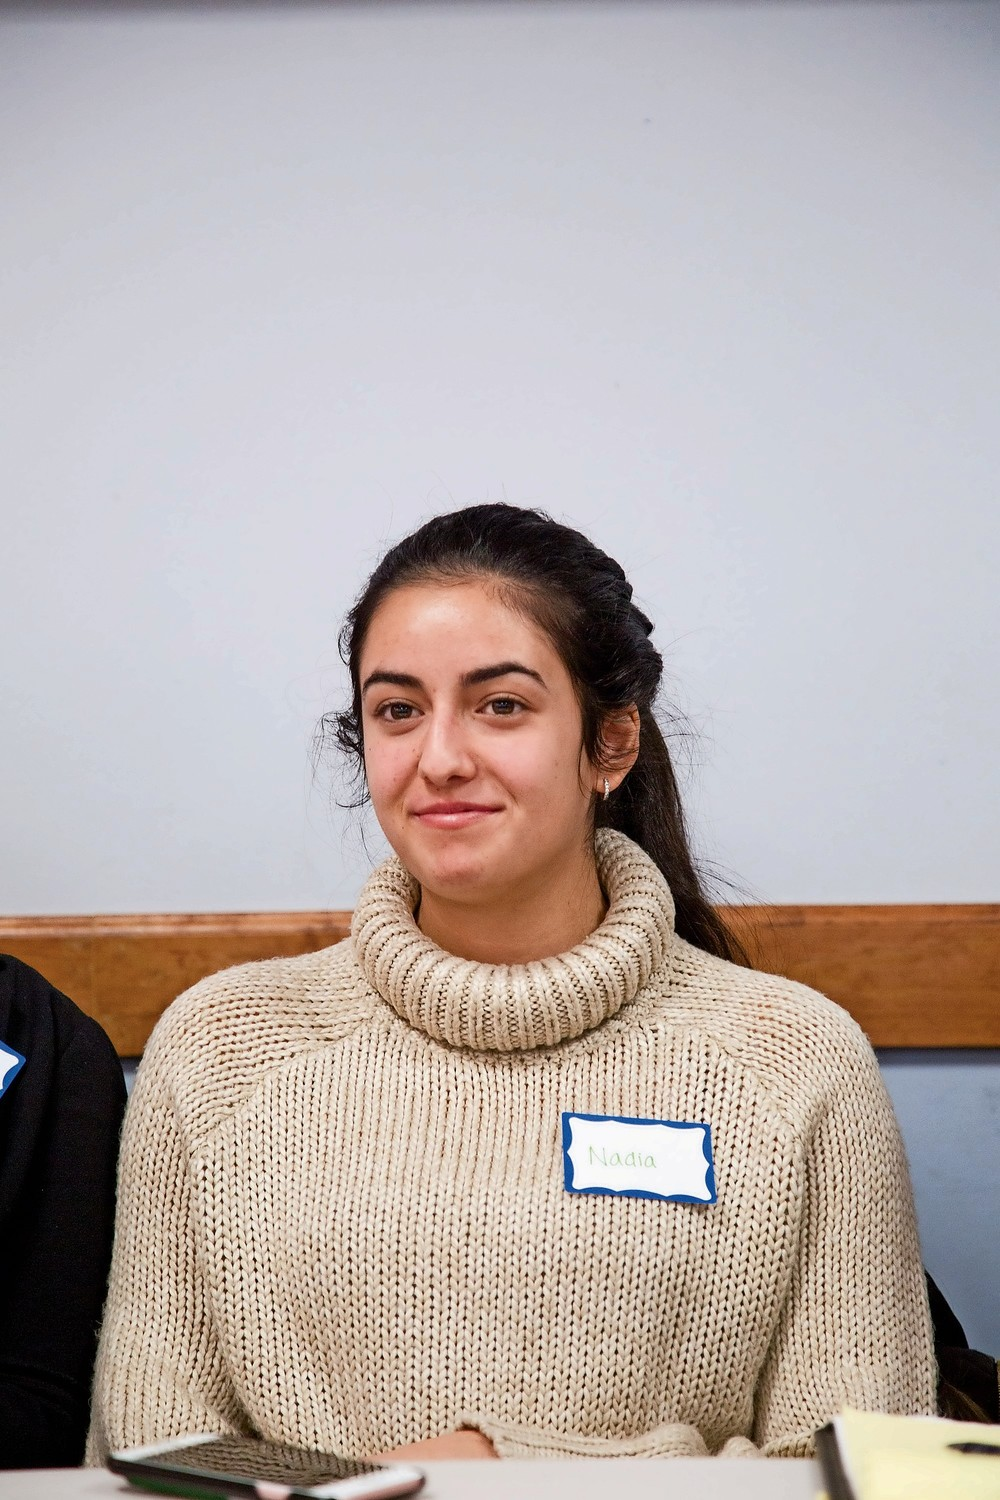 Nadia Itani, a Muslim student at Manhattan College, speaks about her experiences at an interfaith event for Jewish and Muslim youth at the Riverdale Y.